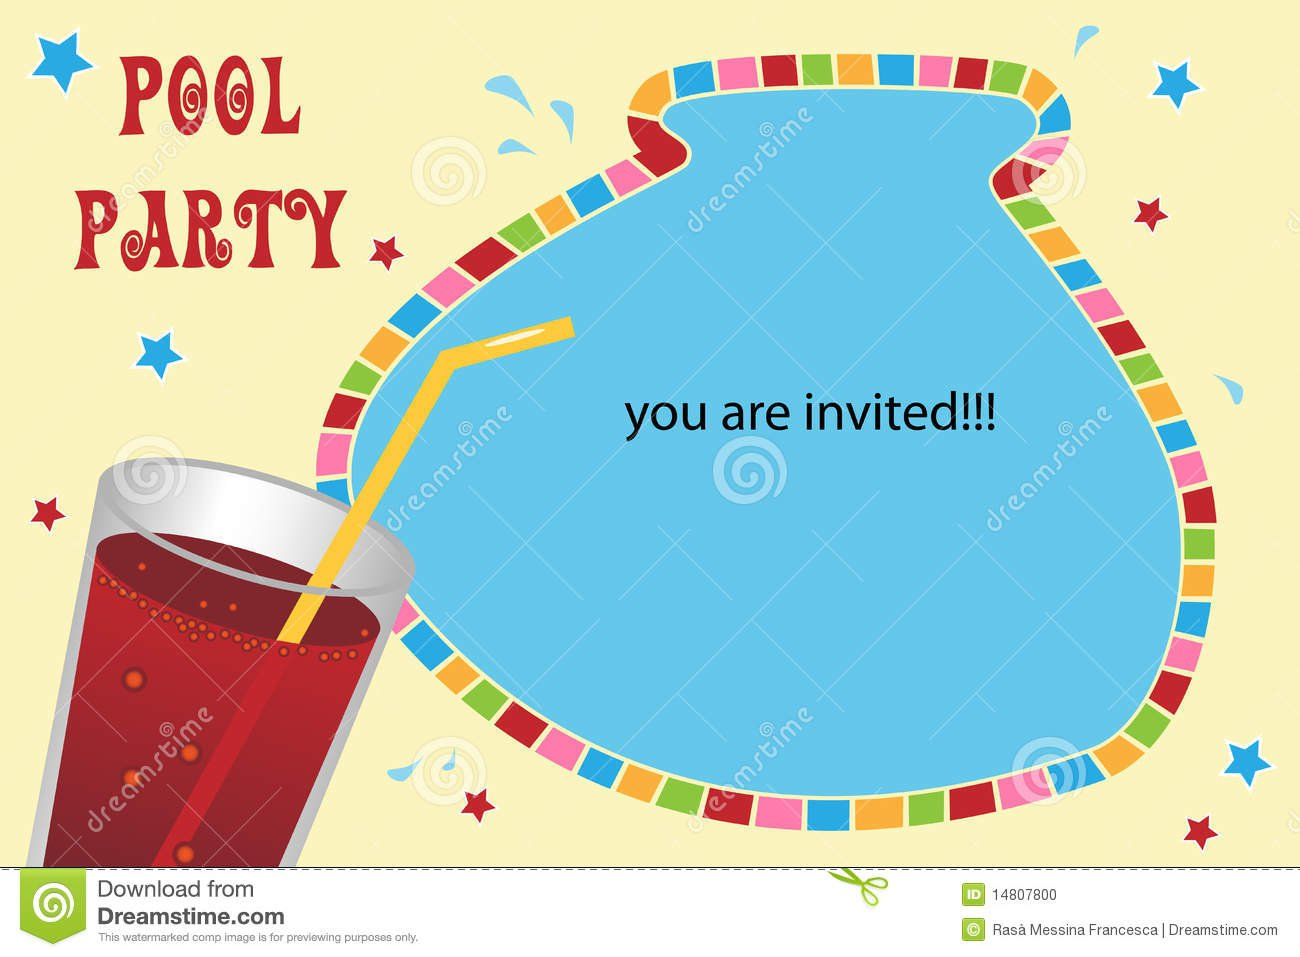 Pool Party Invitations Clip Art